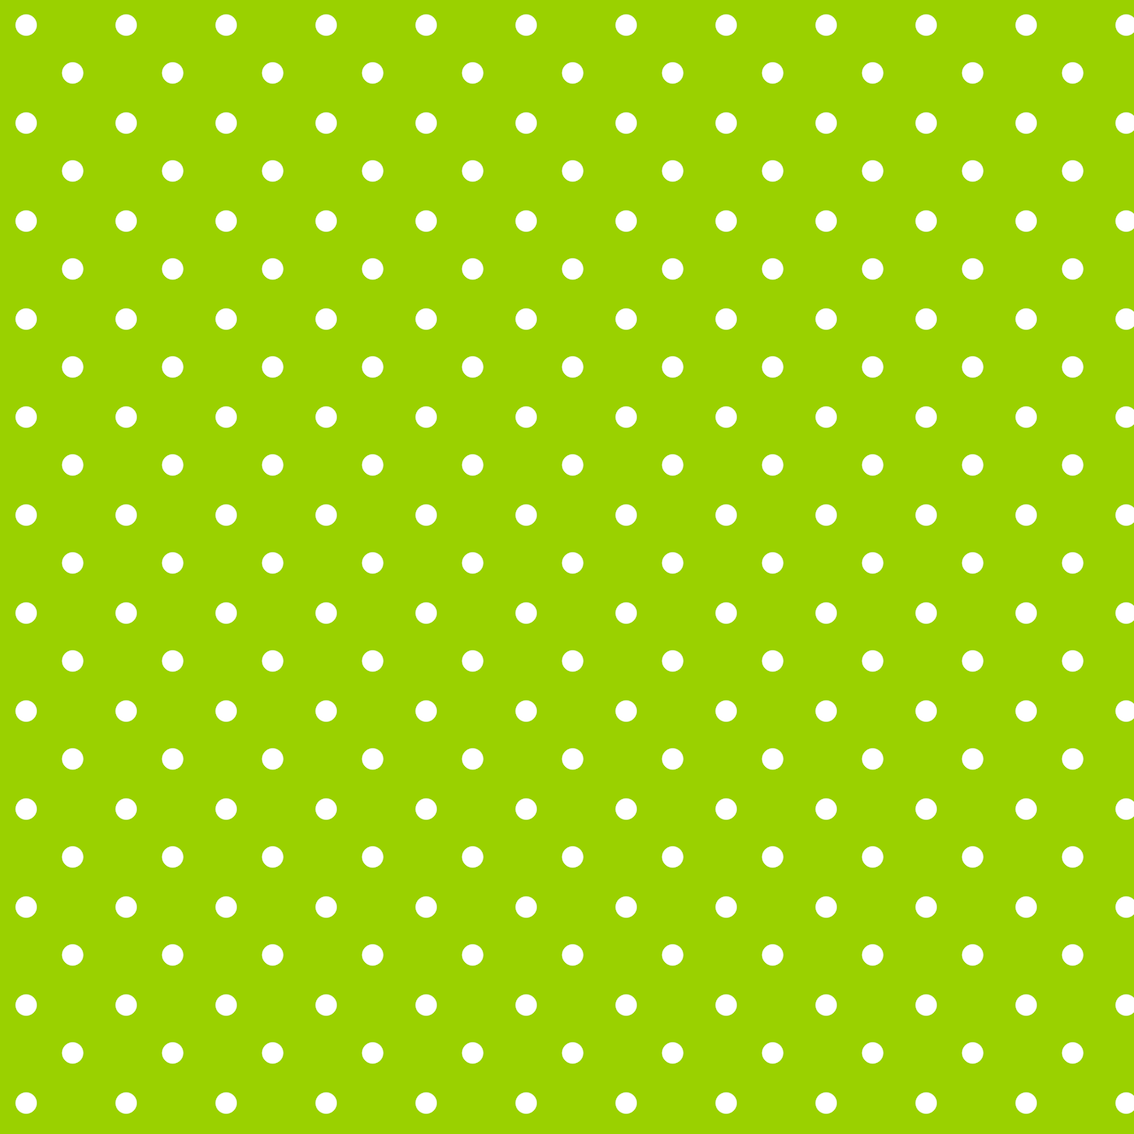 White Polka Dot Wallpaper - WallpaperSafari